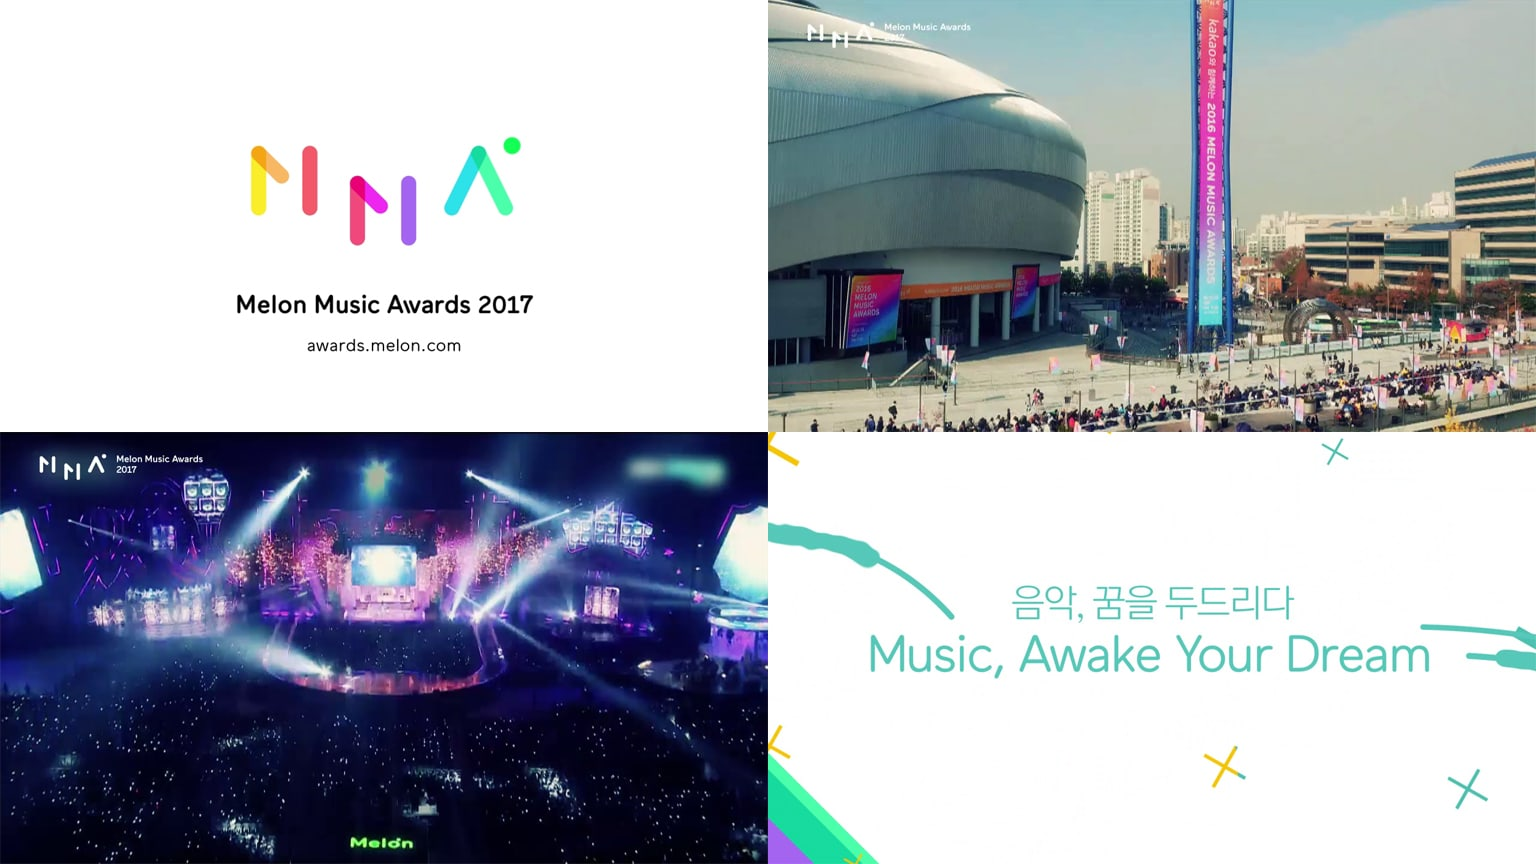 Melon Spotlights Key Themes In 2017 Music Industry Ahead Of Melon Music Awards